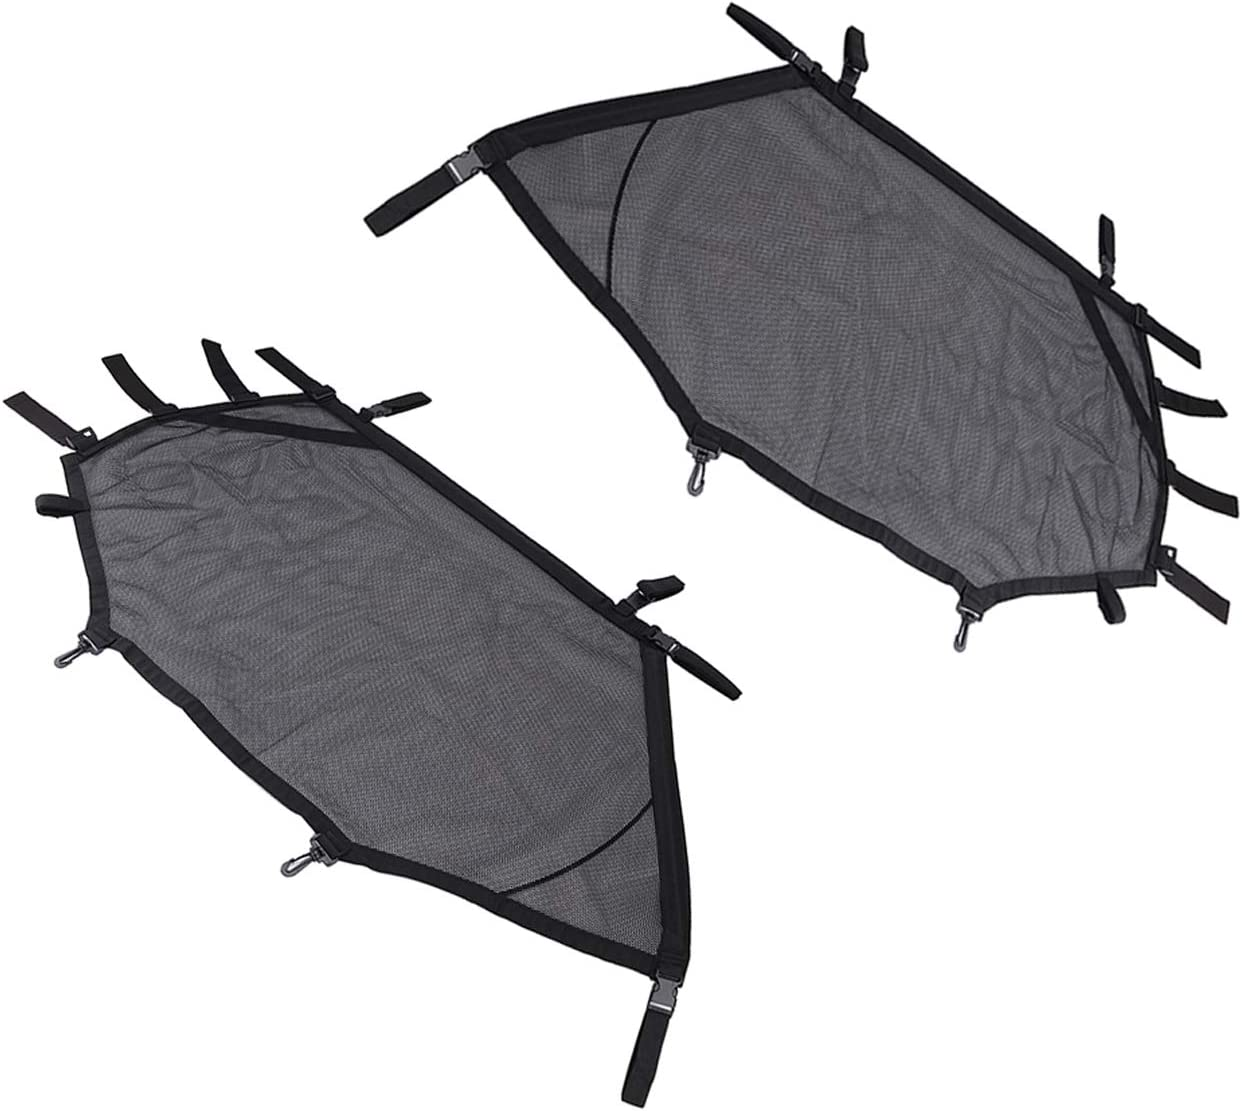 Front Rear Window Wind Screen Shade Shield Cover Window Mesh Net Door Scratch Prevention Protection Soft Top Mesh Roof Sunshade Cover for Polaris RZR 570 800 900 turbo s 1000 XP 900 S 1000 S